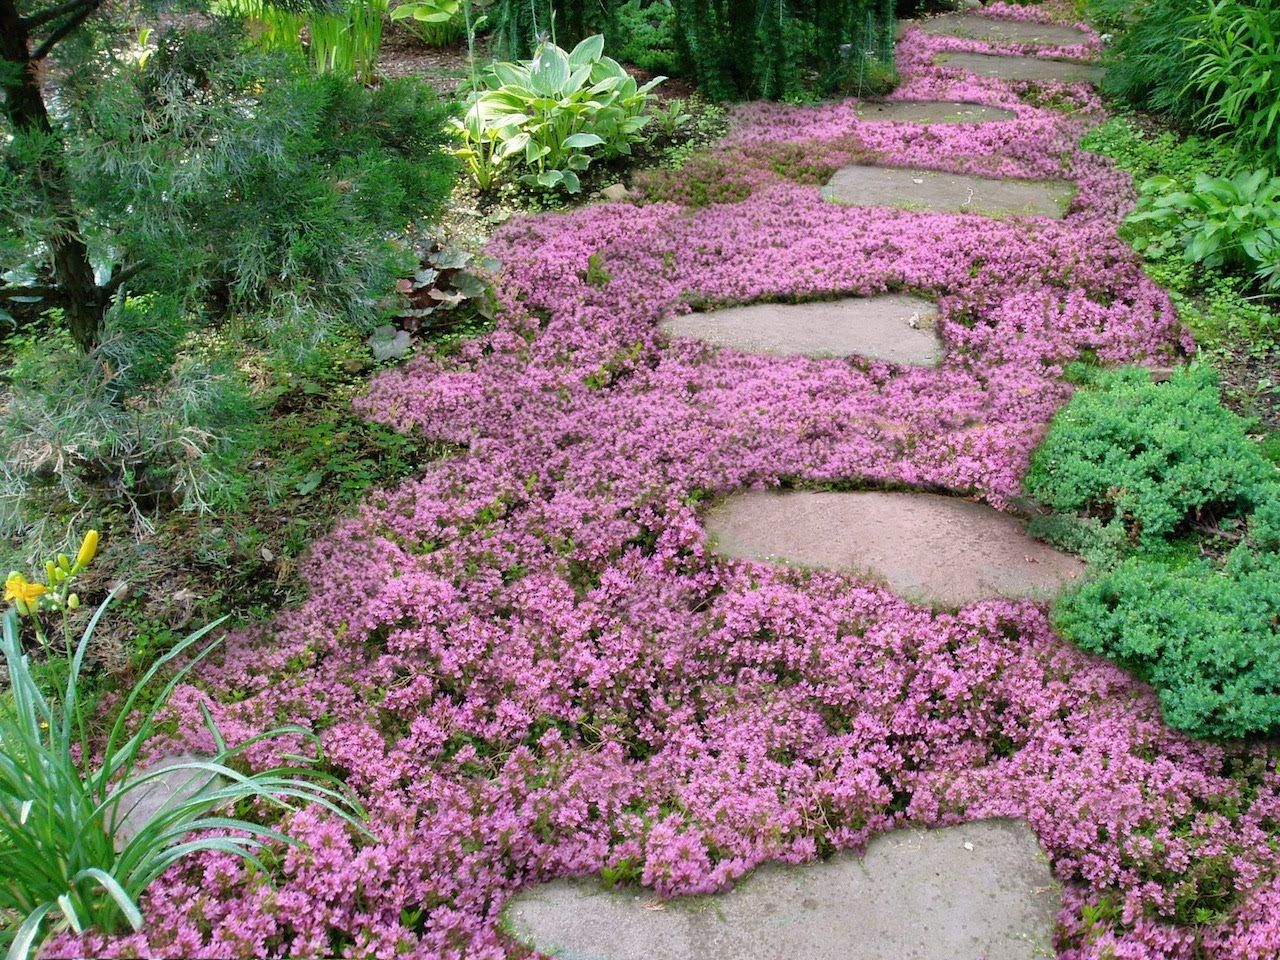 Live mulch how to plant sweet and low flowering ground cover live mulch how to plant sweet and low flowering ground coverfunny and good info mightylinksfo